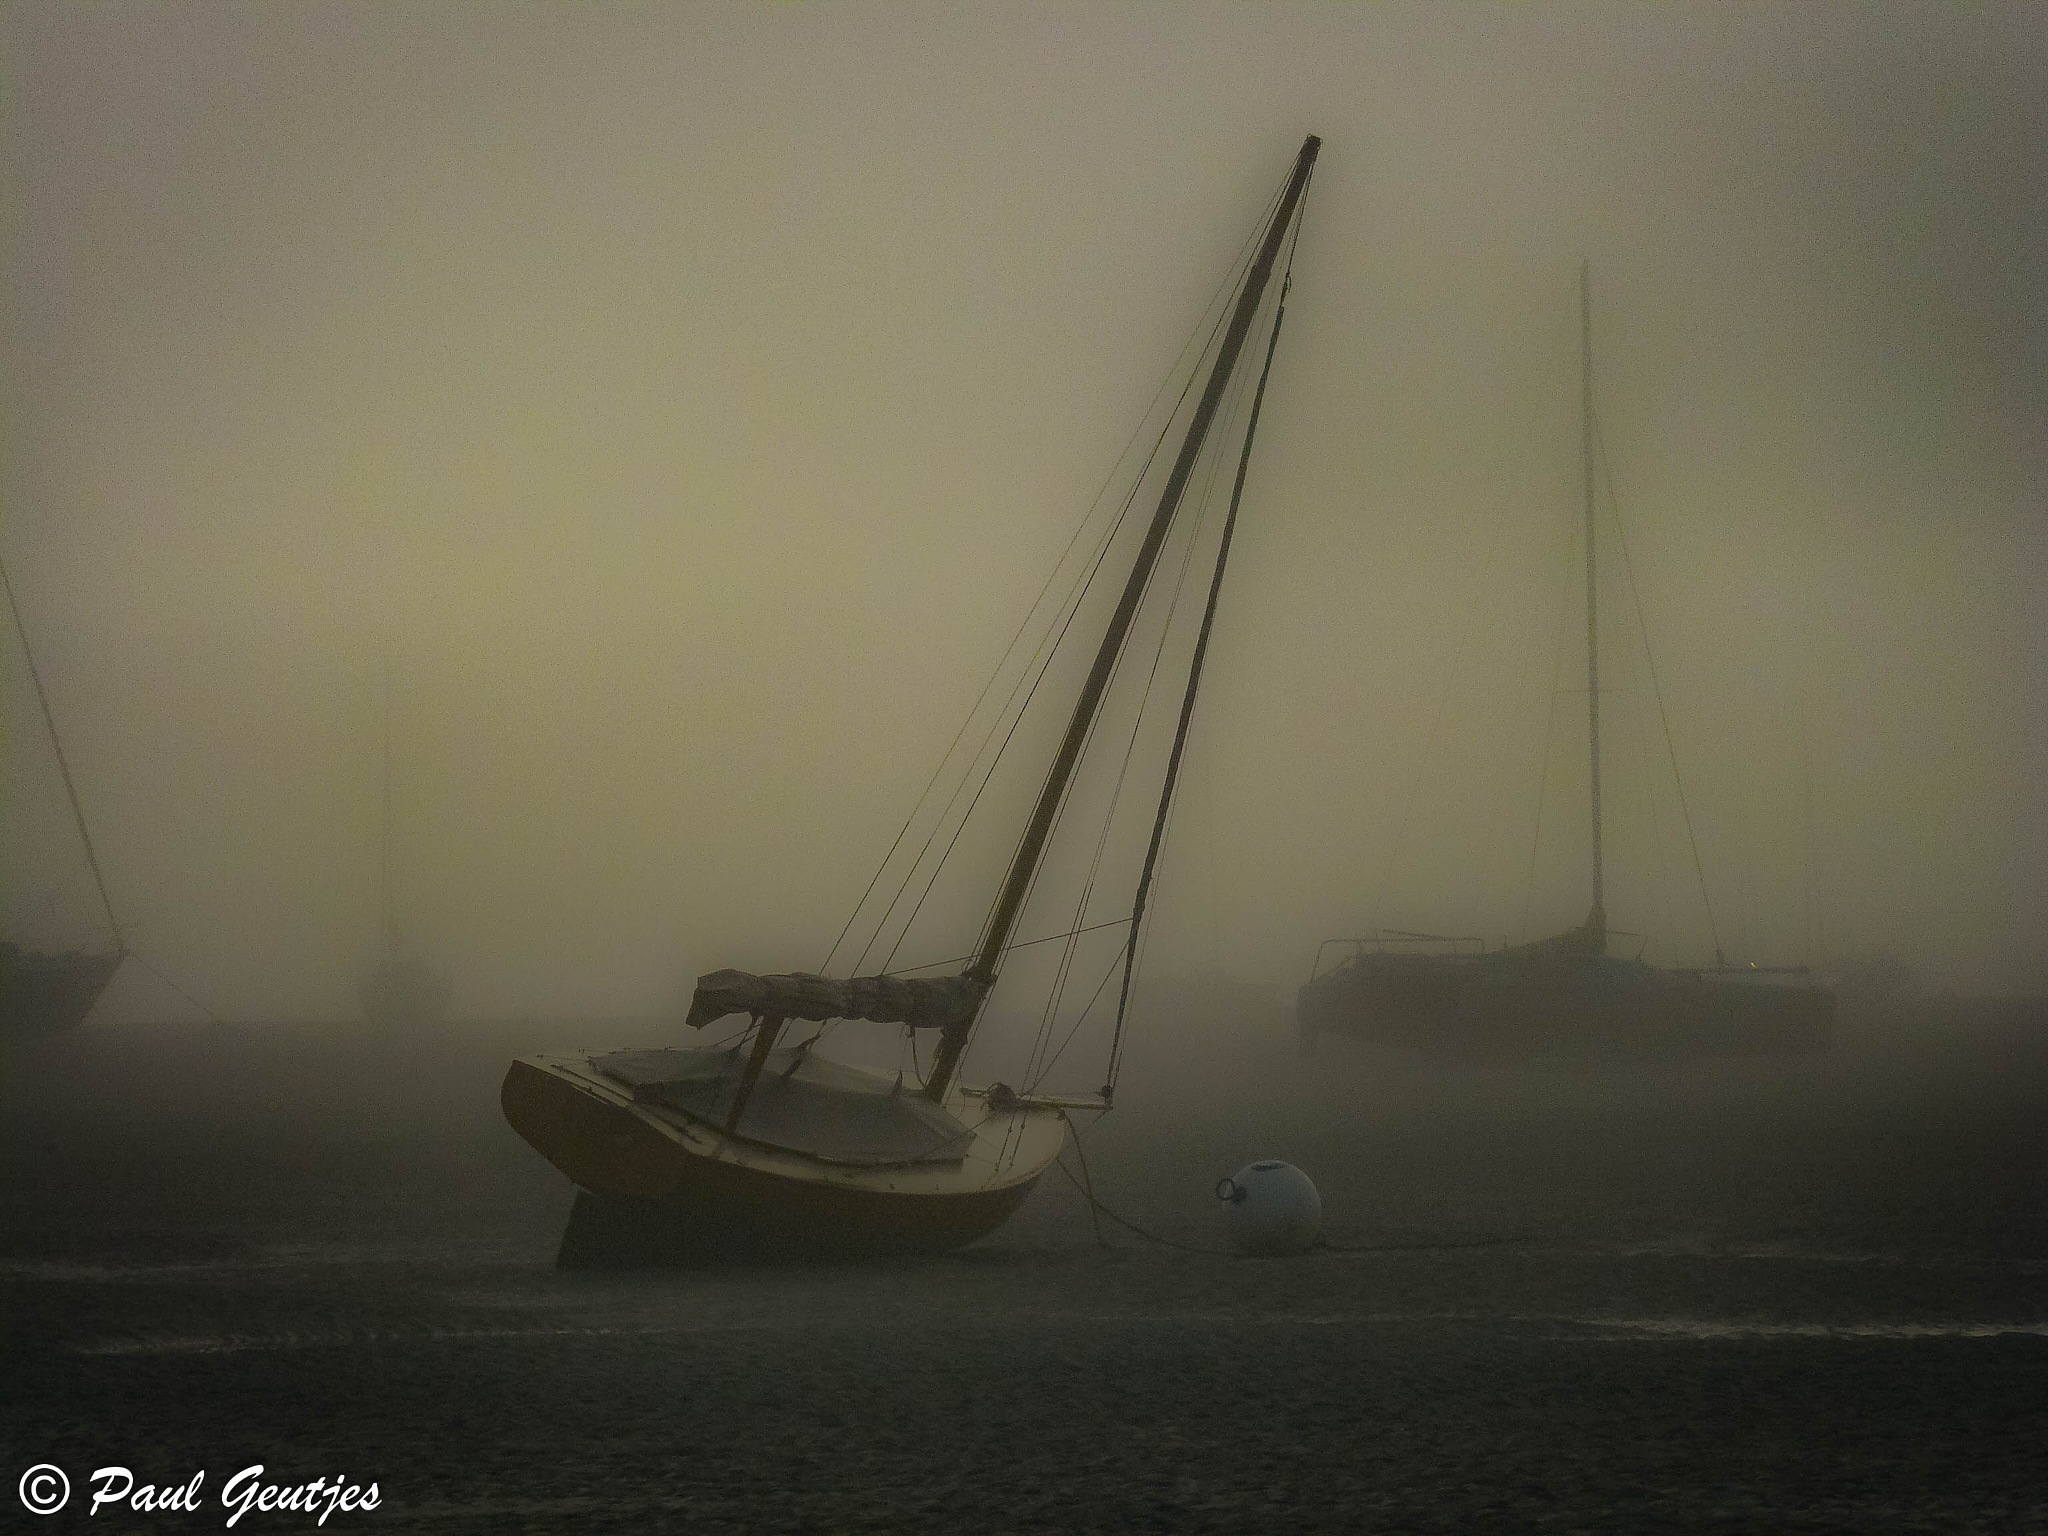 Sailing boats stuck in low tide and in the fog. Serie 6 of 8 by Paul Geutjes